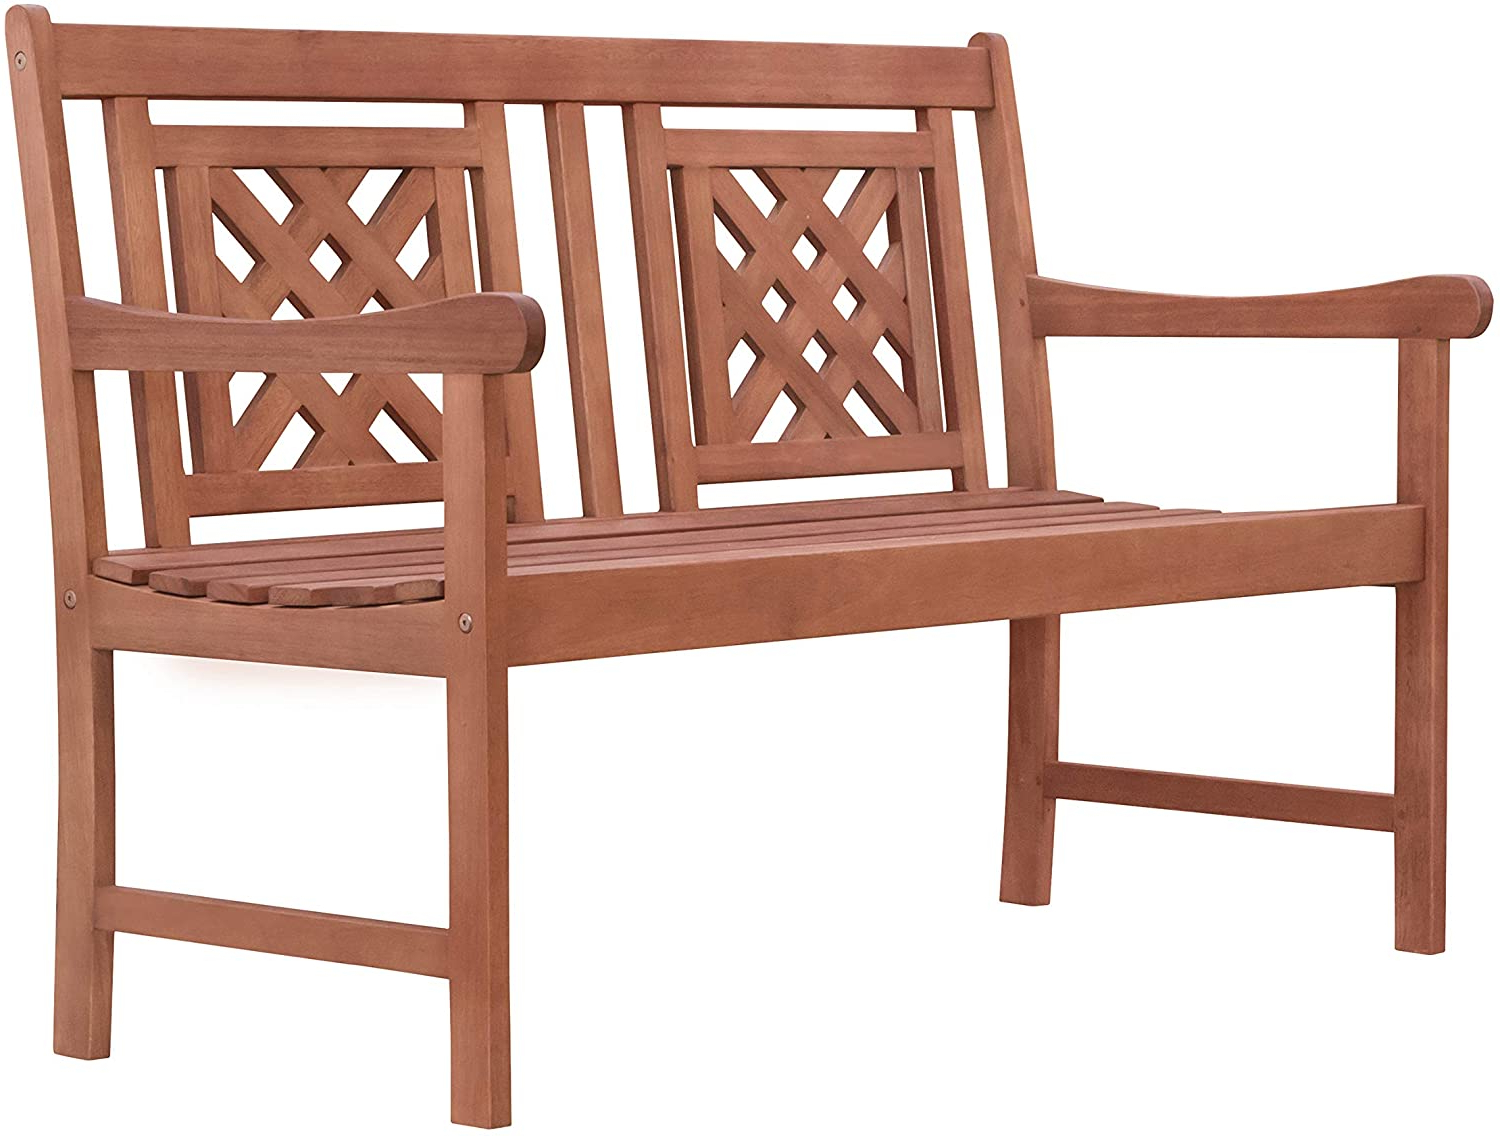 Most Popular Guyapi Garden Benches With Regard To Vifah Malibu Outdoor Patio Plaid 4 Foot Eucalyptus Hardwood Bench (View 29 of 30)